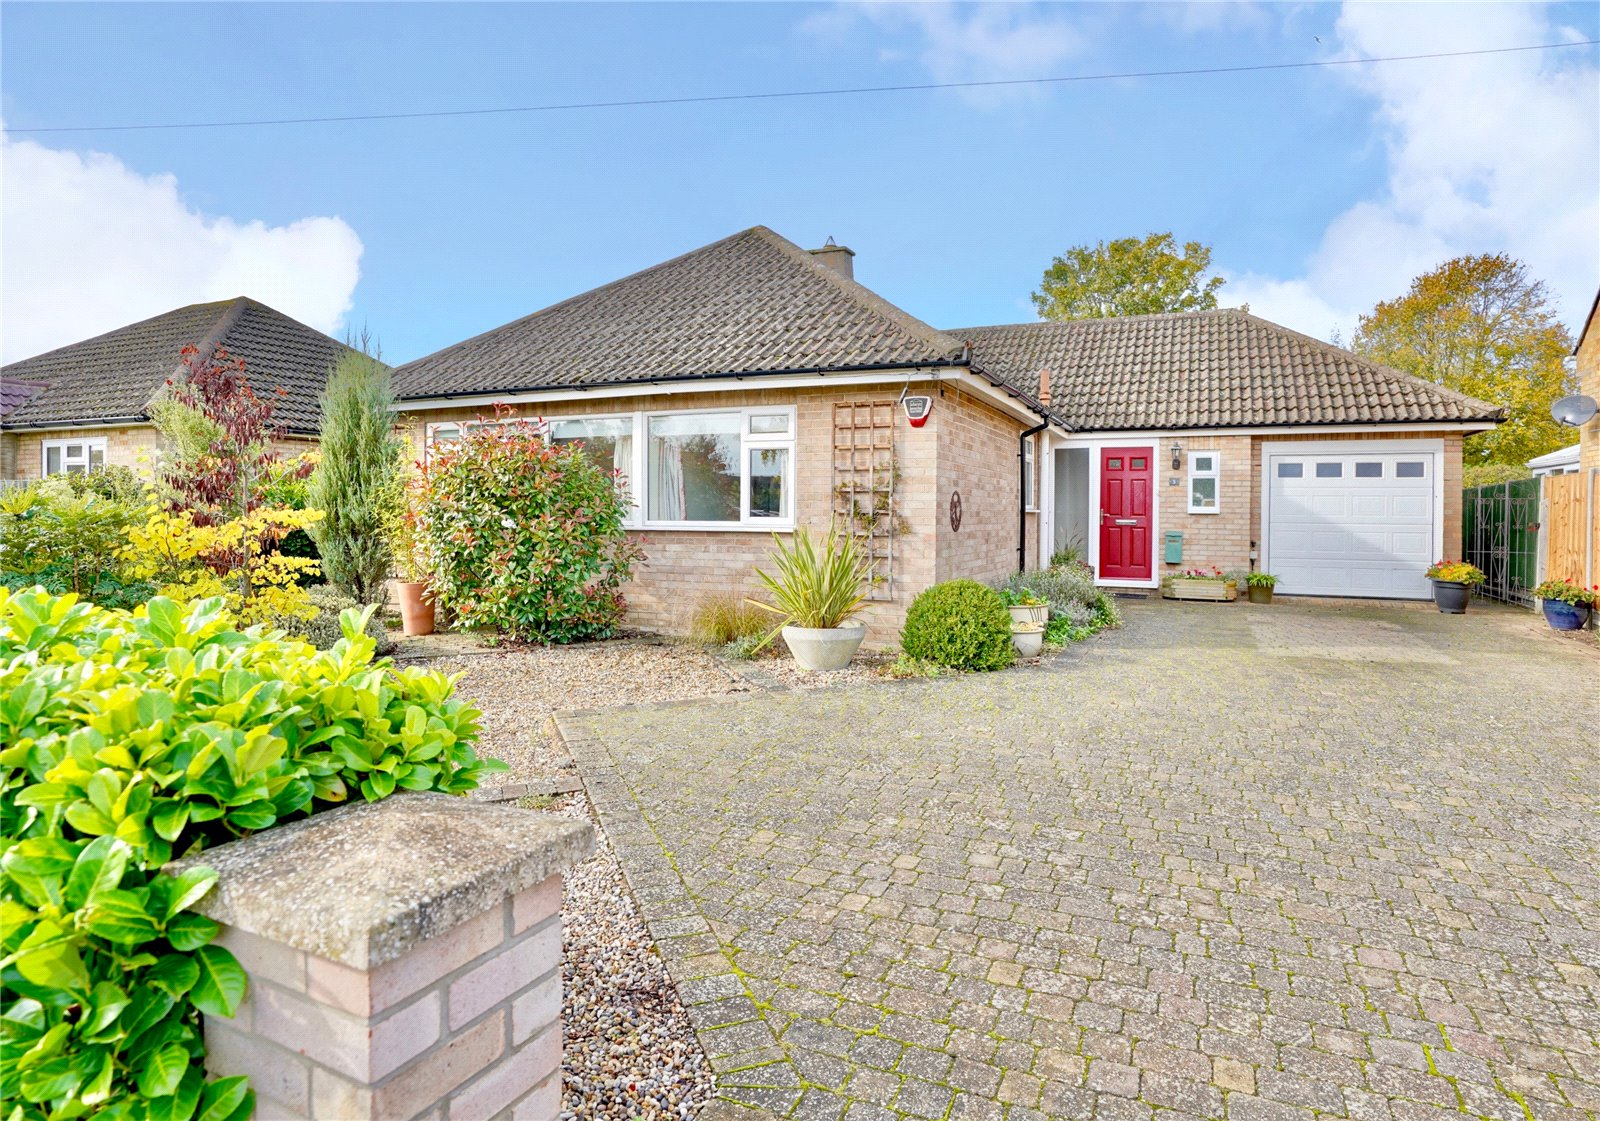 3 bed bungalow for sale in Eaton Ford, Saviles Close, PE19 7GD - Property Image 1